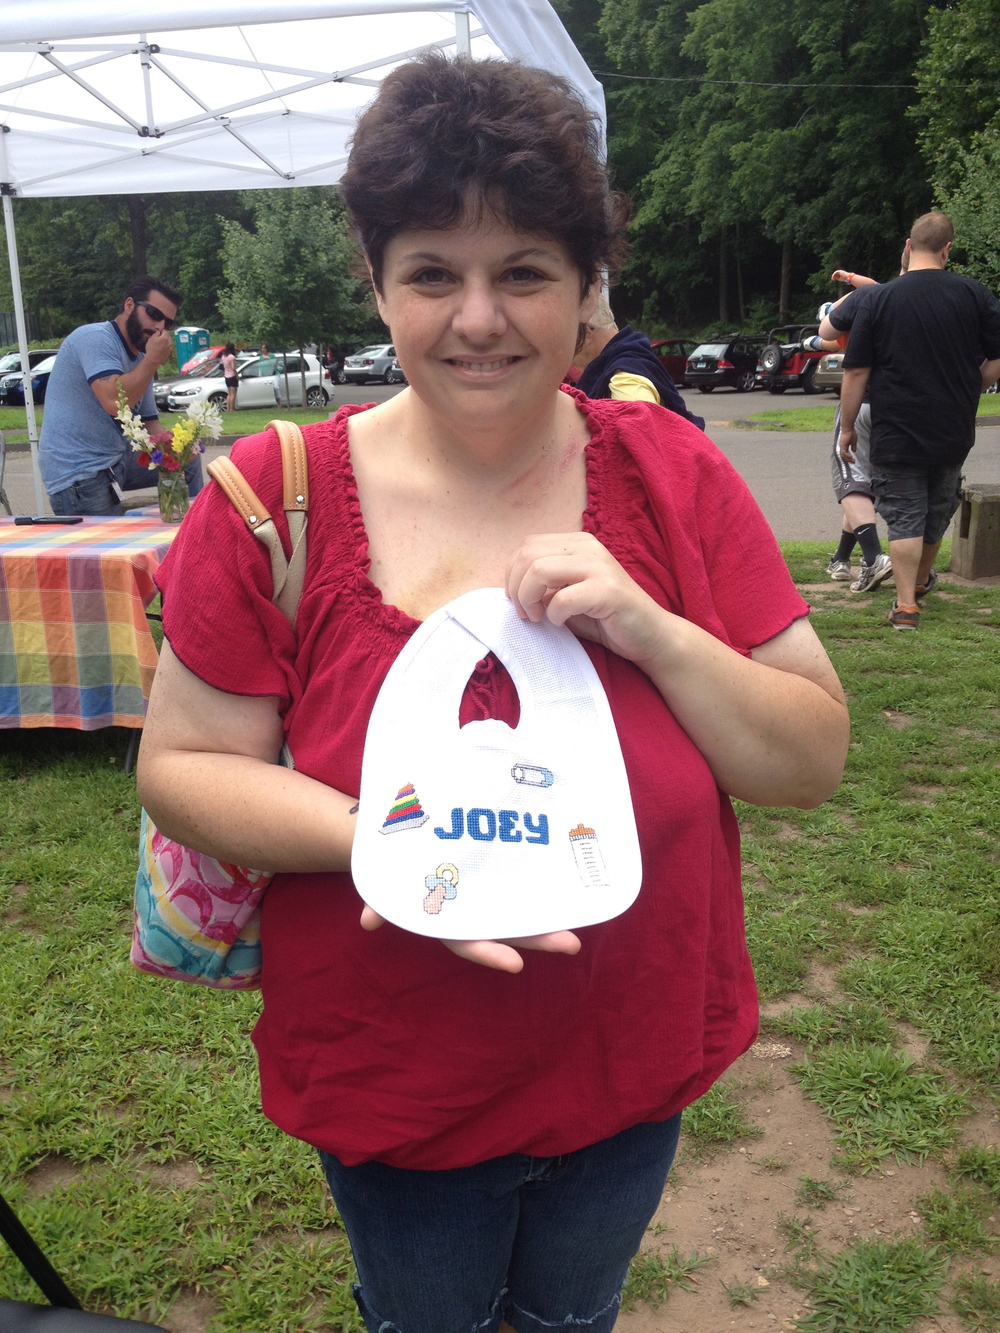 Anastacia D'Aiuto donates a cross-stitched bib to MMoAA at the Edgewood Park Farmer's Market